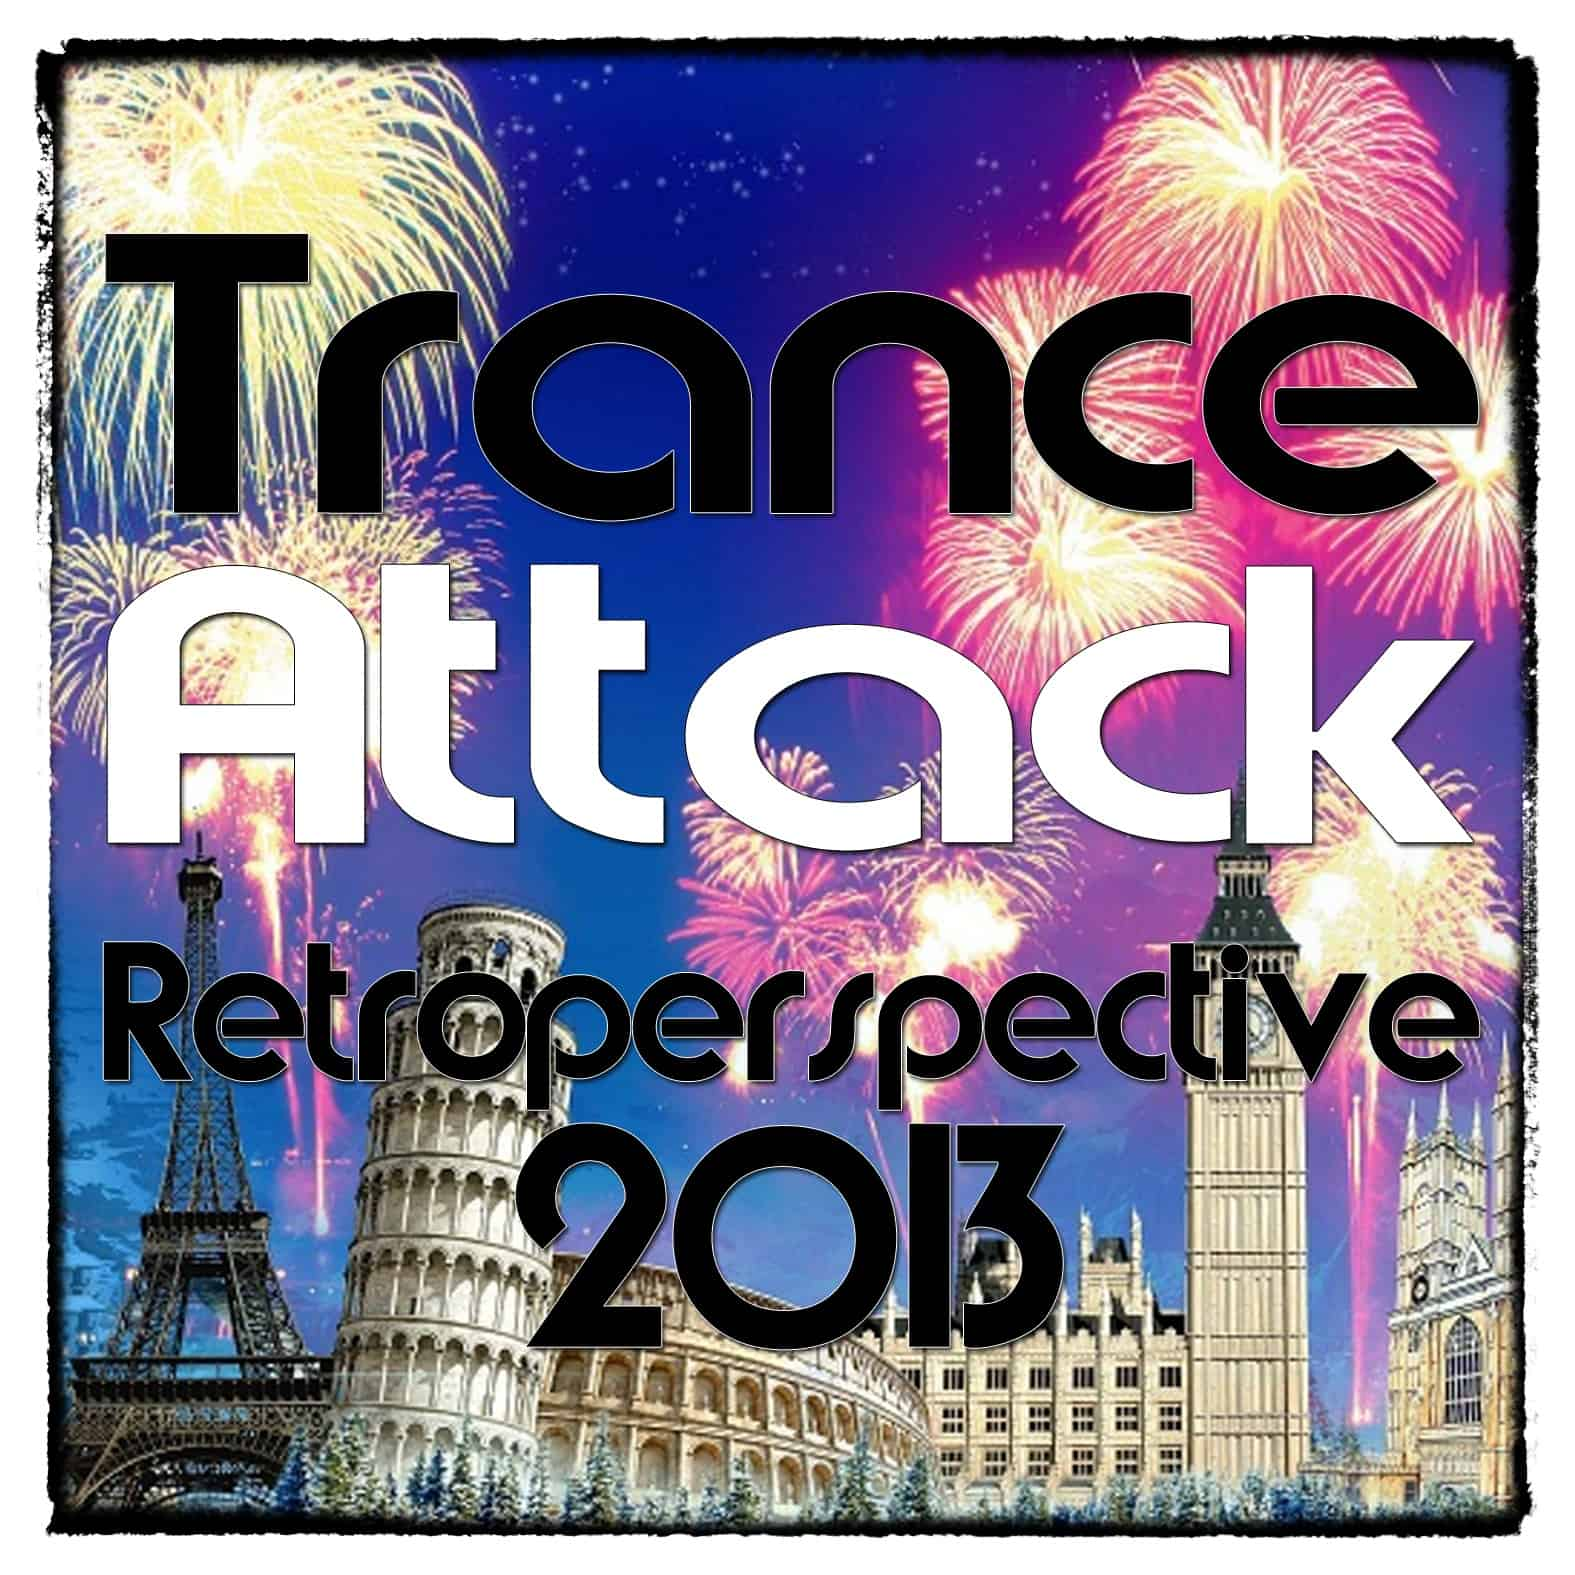 Retroperspective 2013 - These tracks made our year!